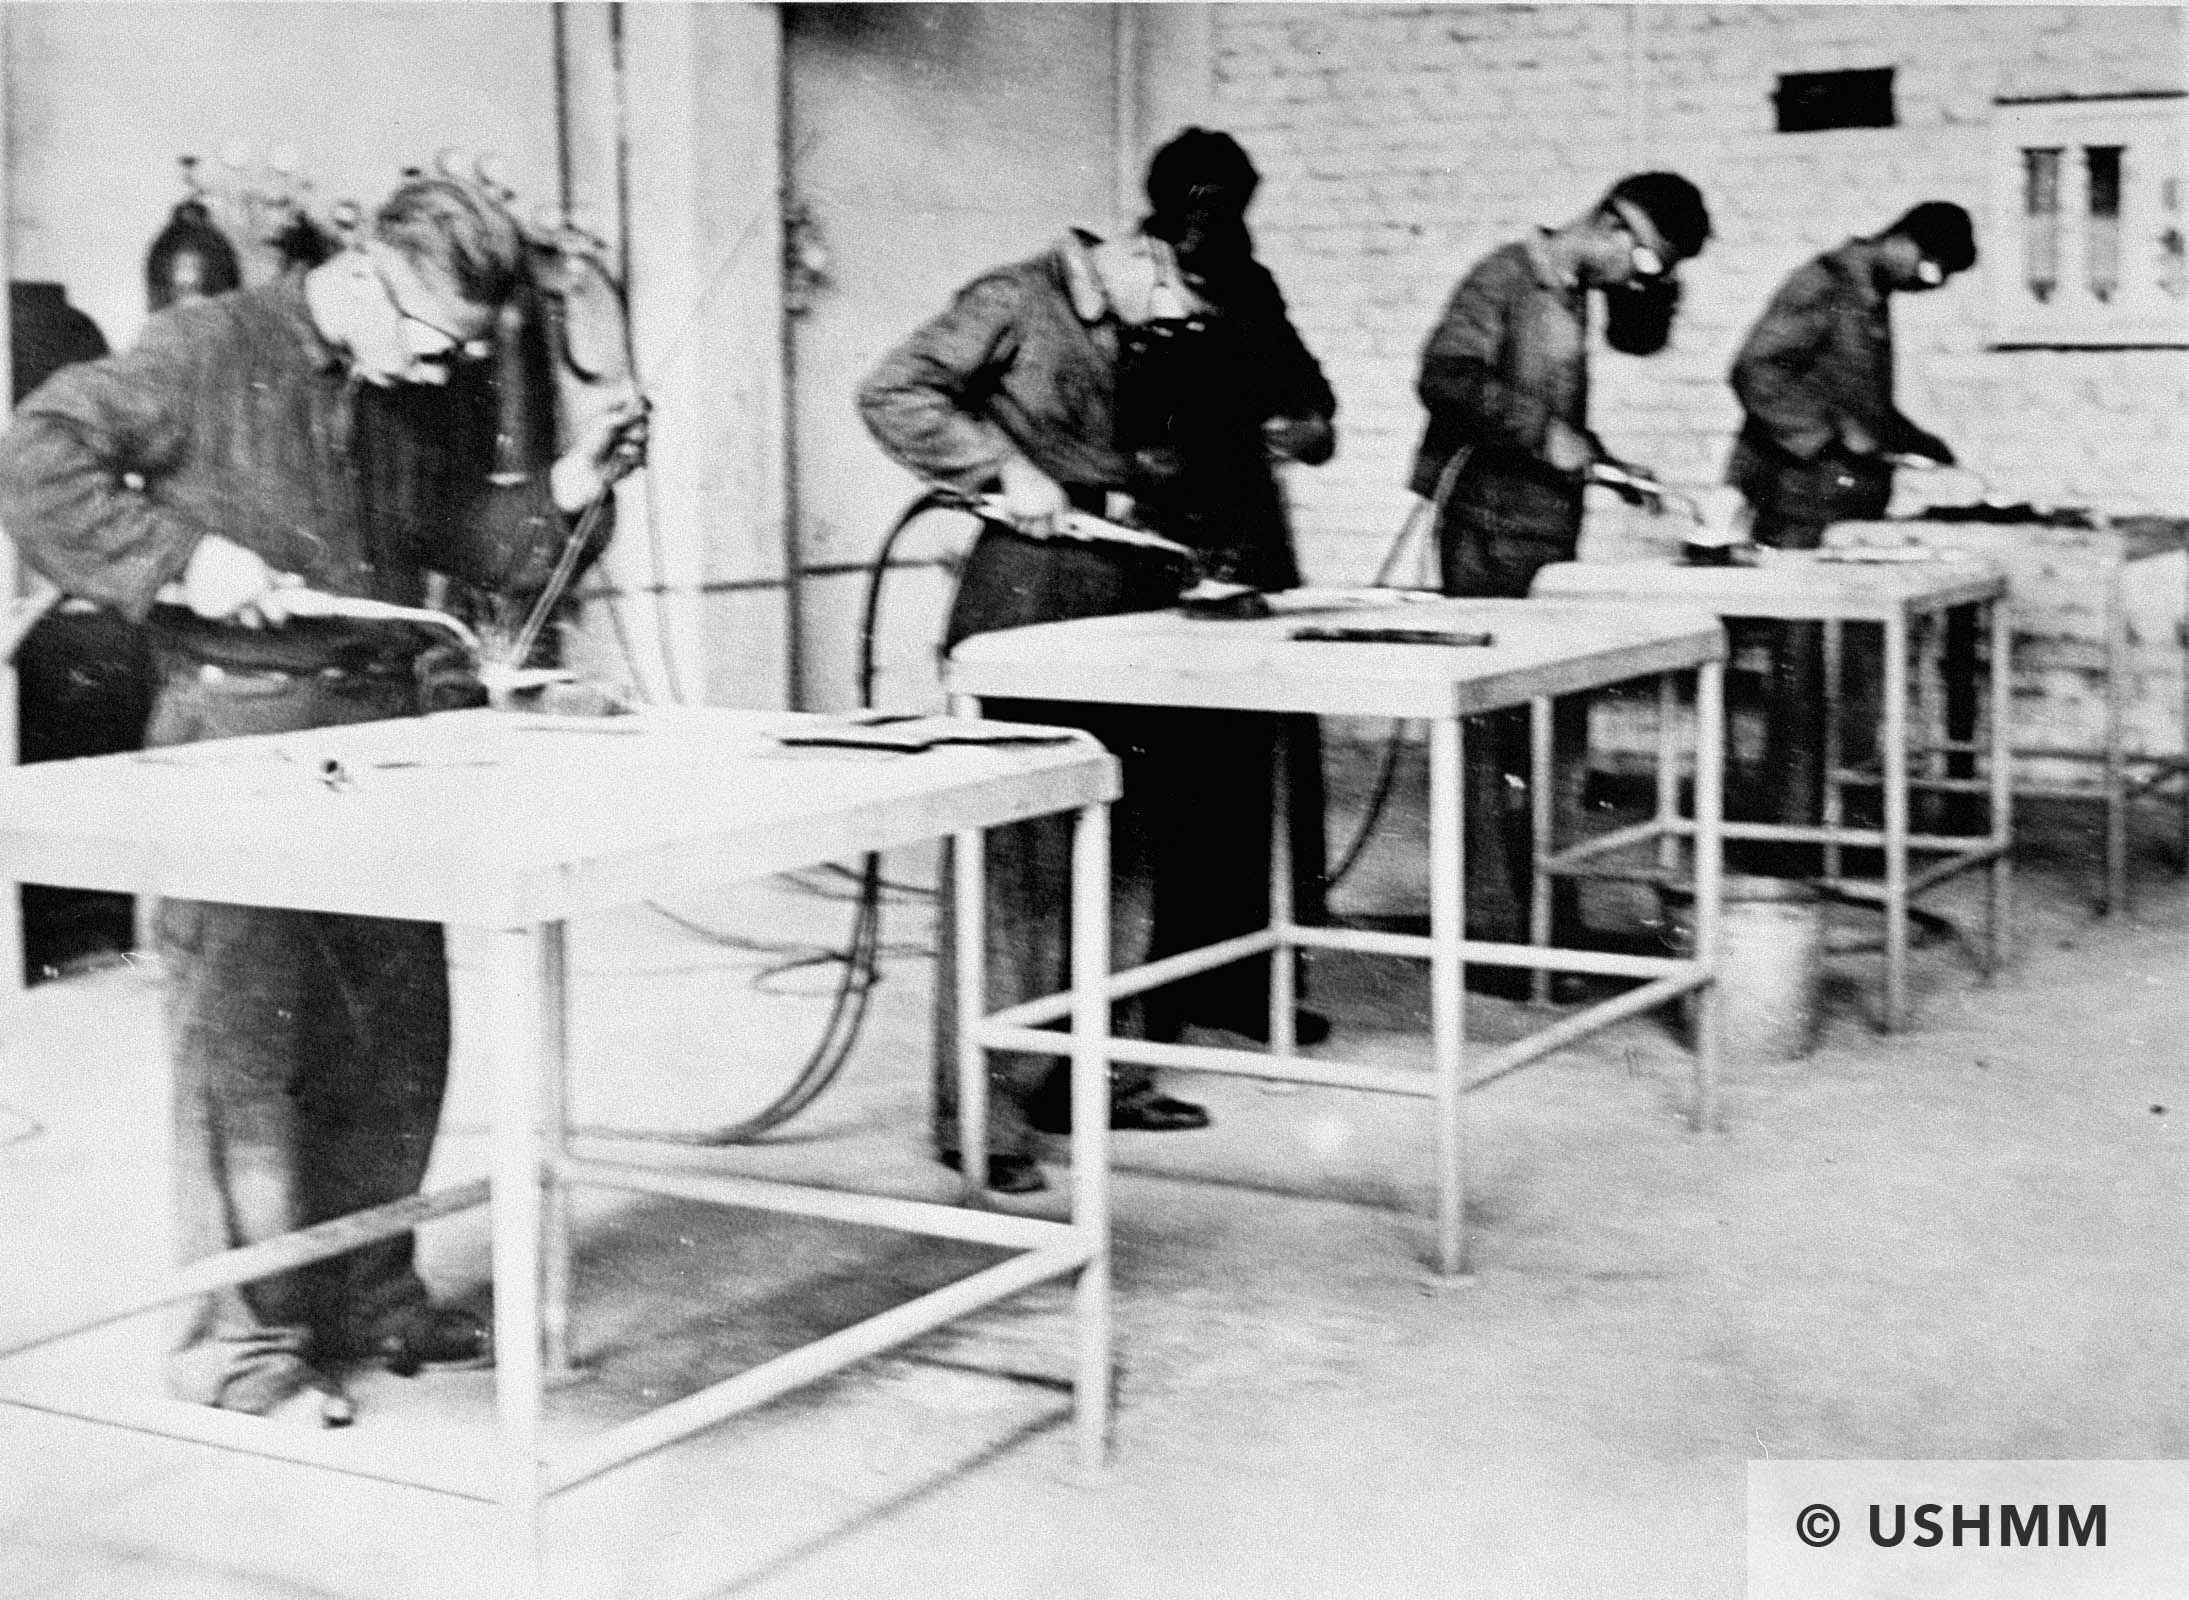 Forced labour in a workshop in Monowitz. USHMM 78607